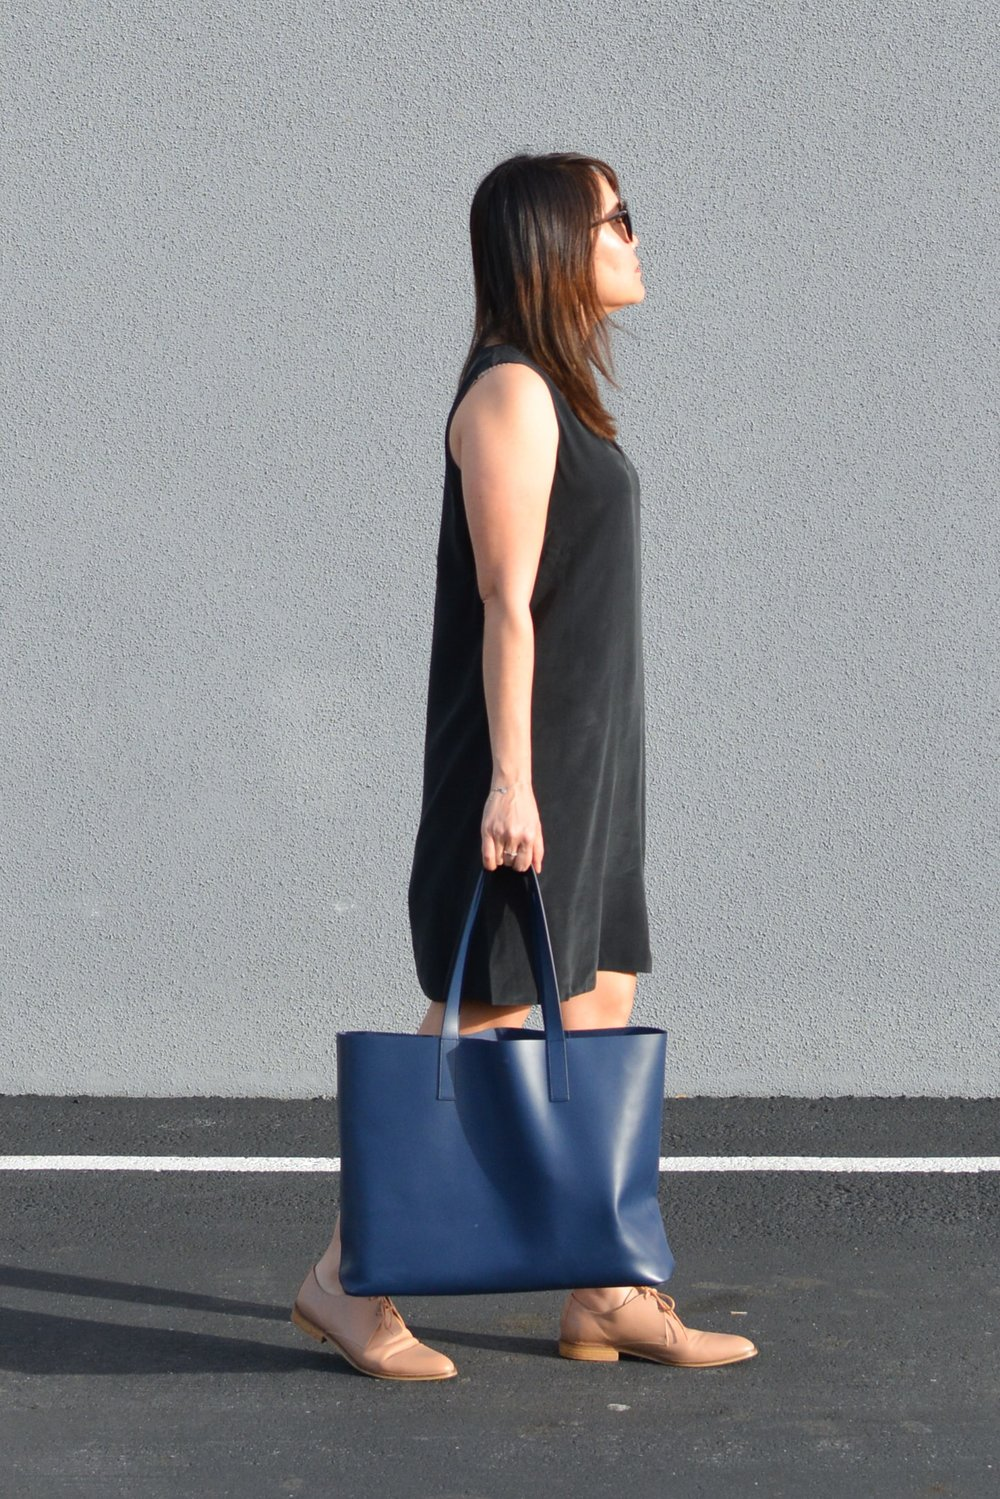 Everlane Review The Double-Lined V-Neck Silk Dress (3 of 3)-min.jpg